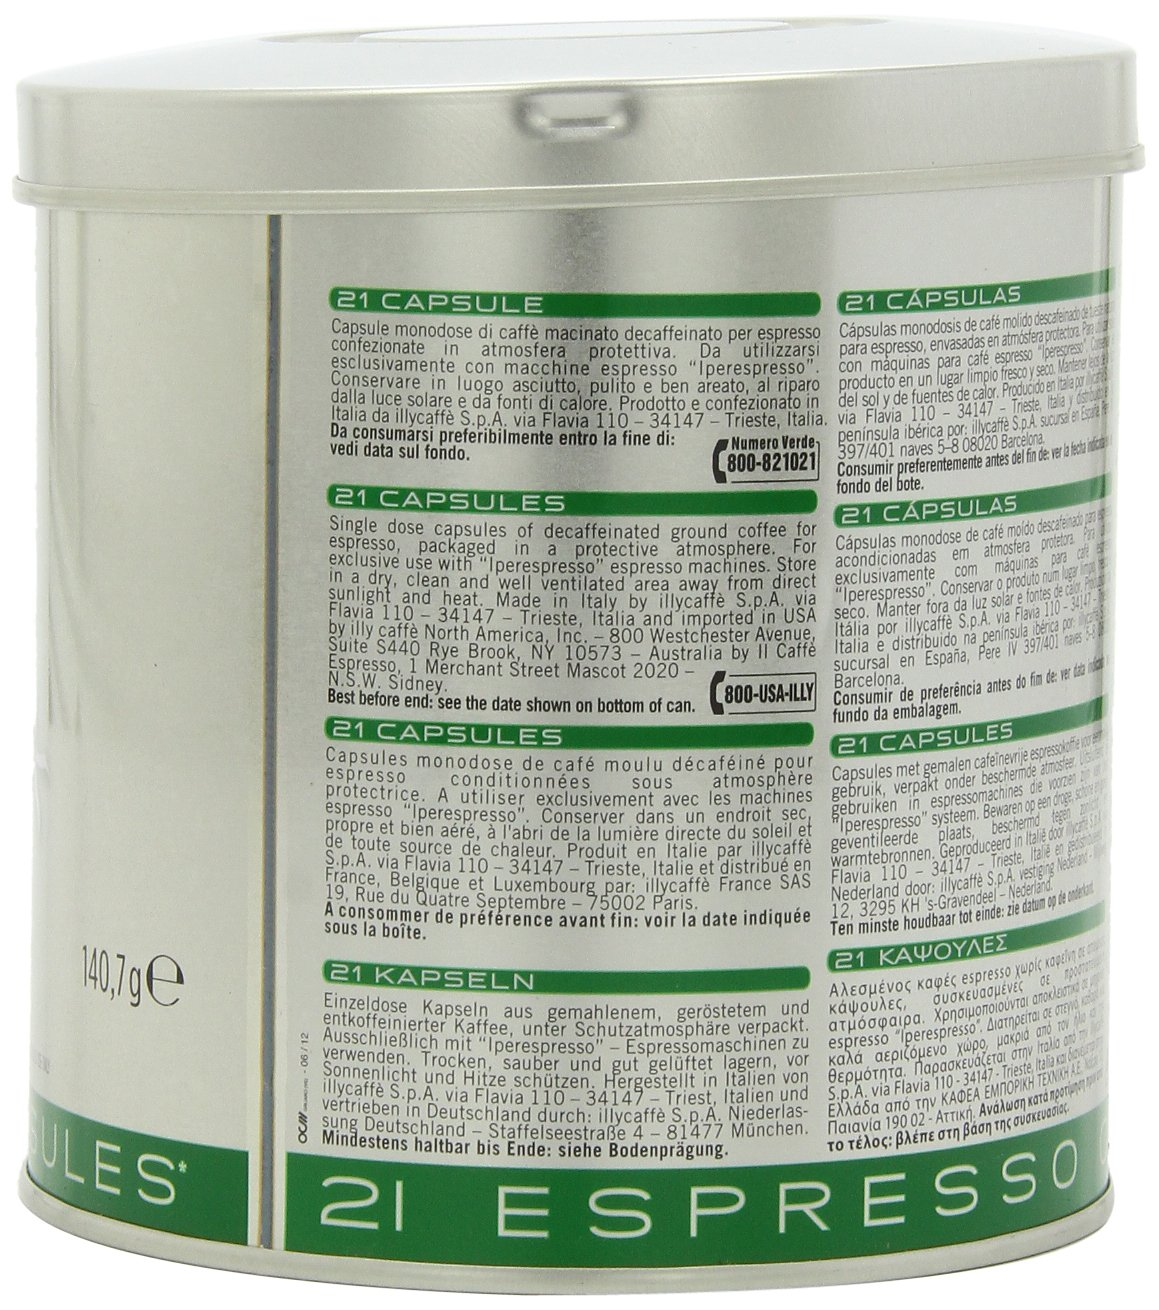 Illy Caffe Lungo Iperespresso Medium Roast, 21 Capsules, , 6 Count: Amazon.com: Grocery & Gourmet Food